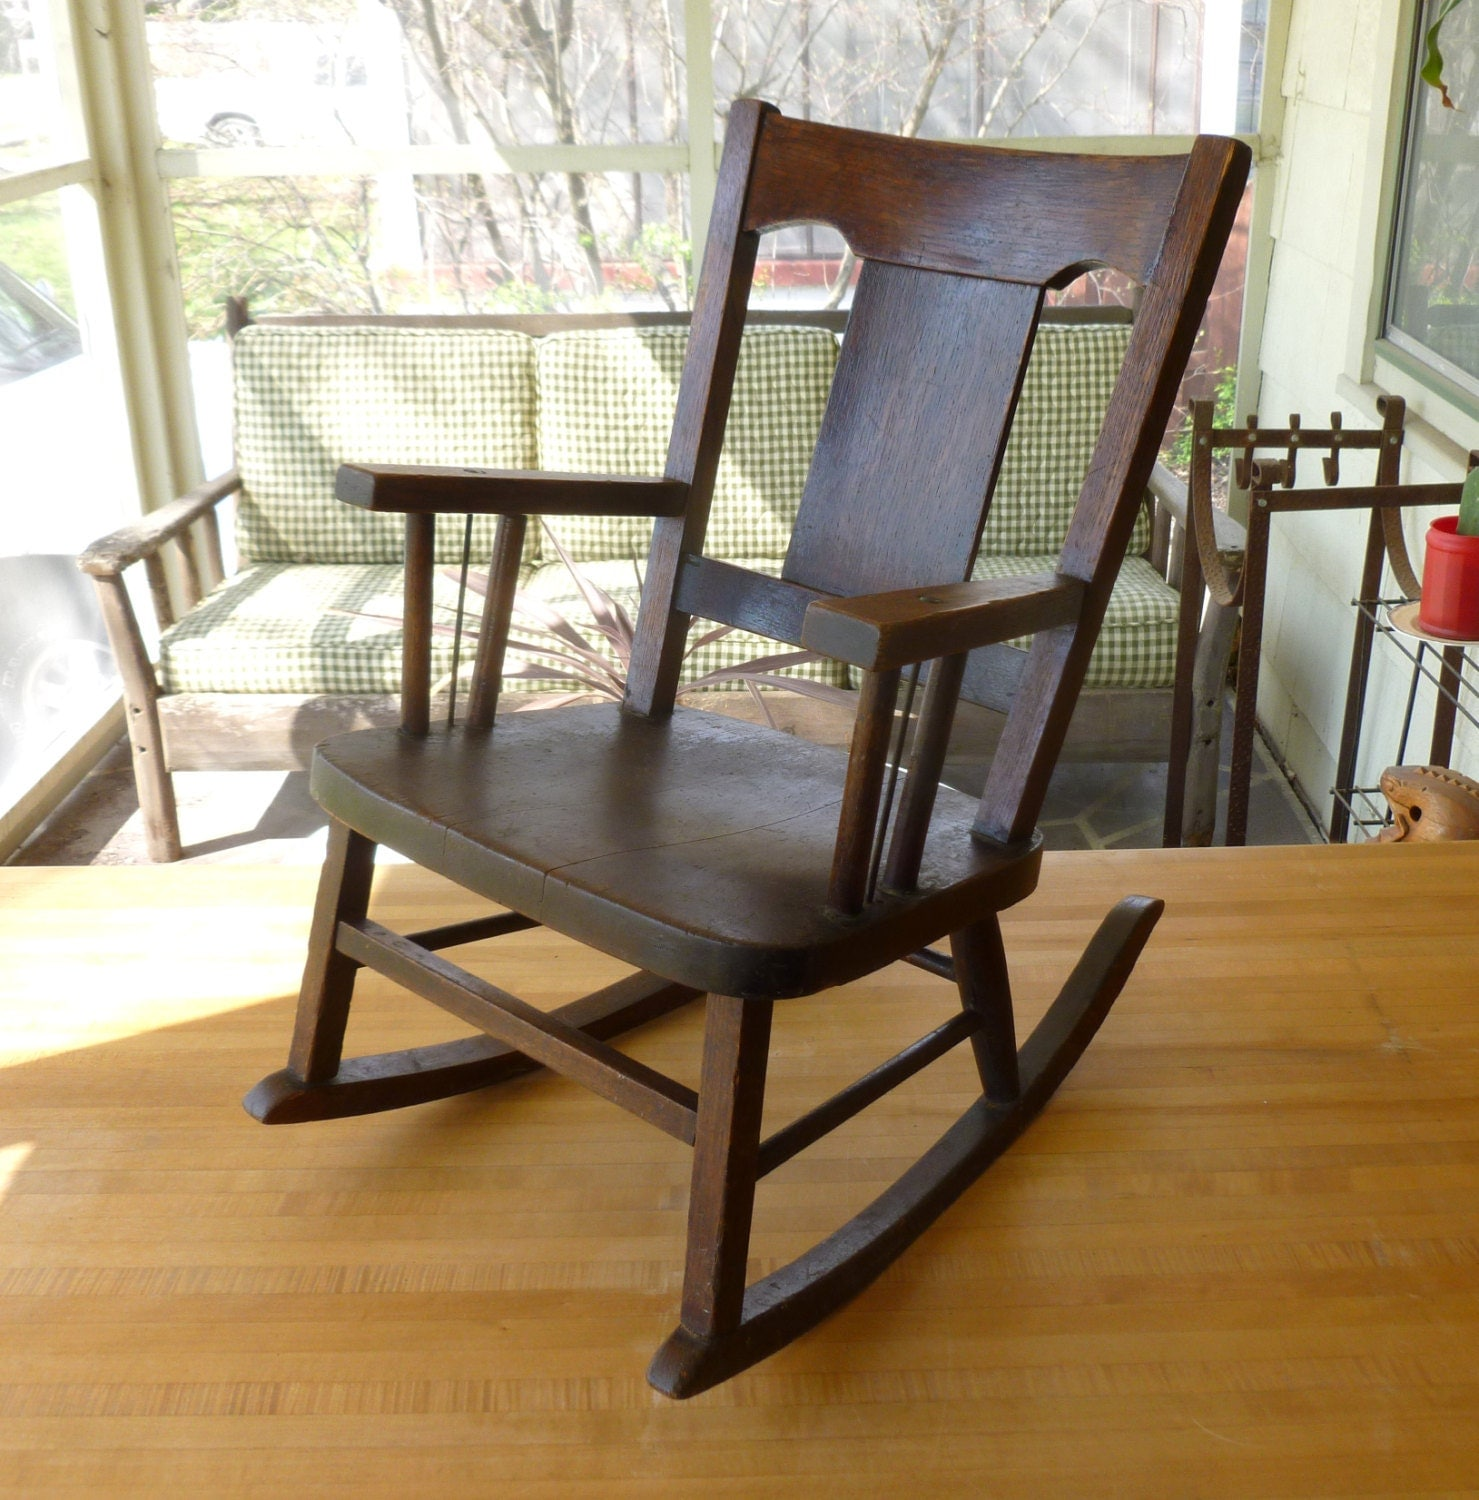 Antique arts crafts oak wood children 39 s rocking by joeblake for Small wooden rocking chair for crafts